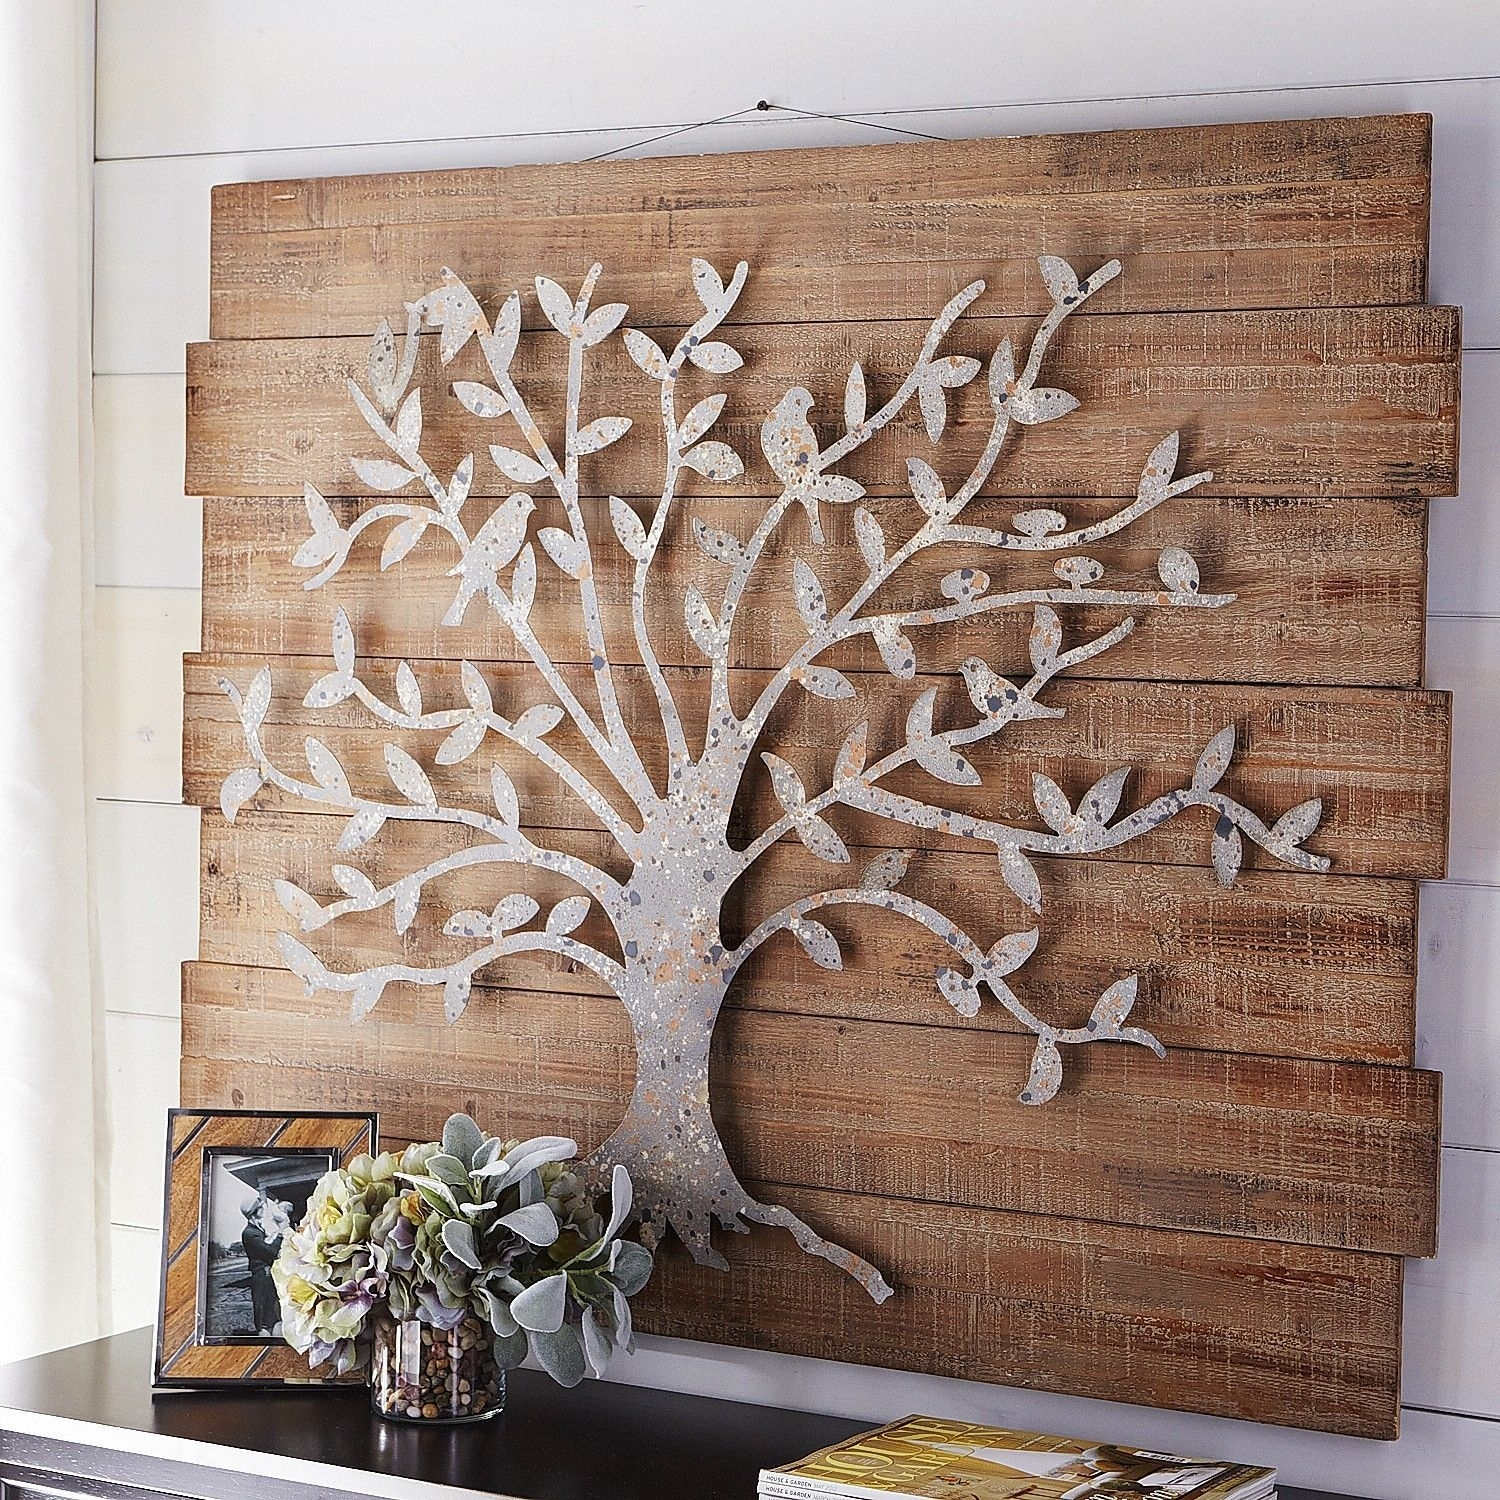 Timeless Tree Wall Decor | Pier 1 Imports … | Metal Work In 2018… With Outdoor Wall Art Decors (View 15 of 20)